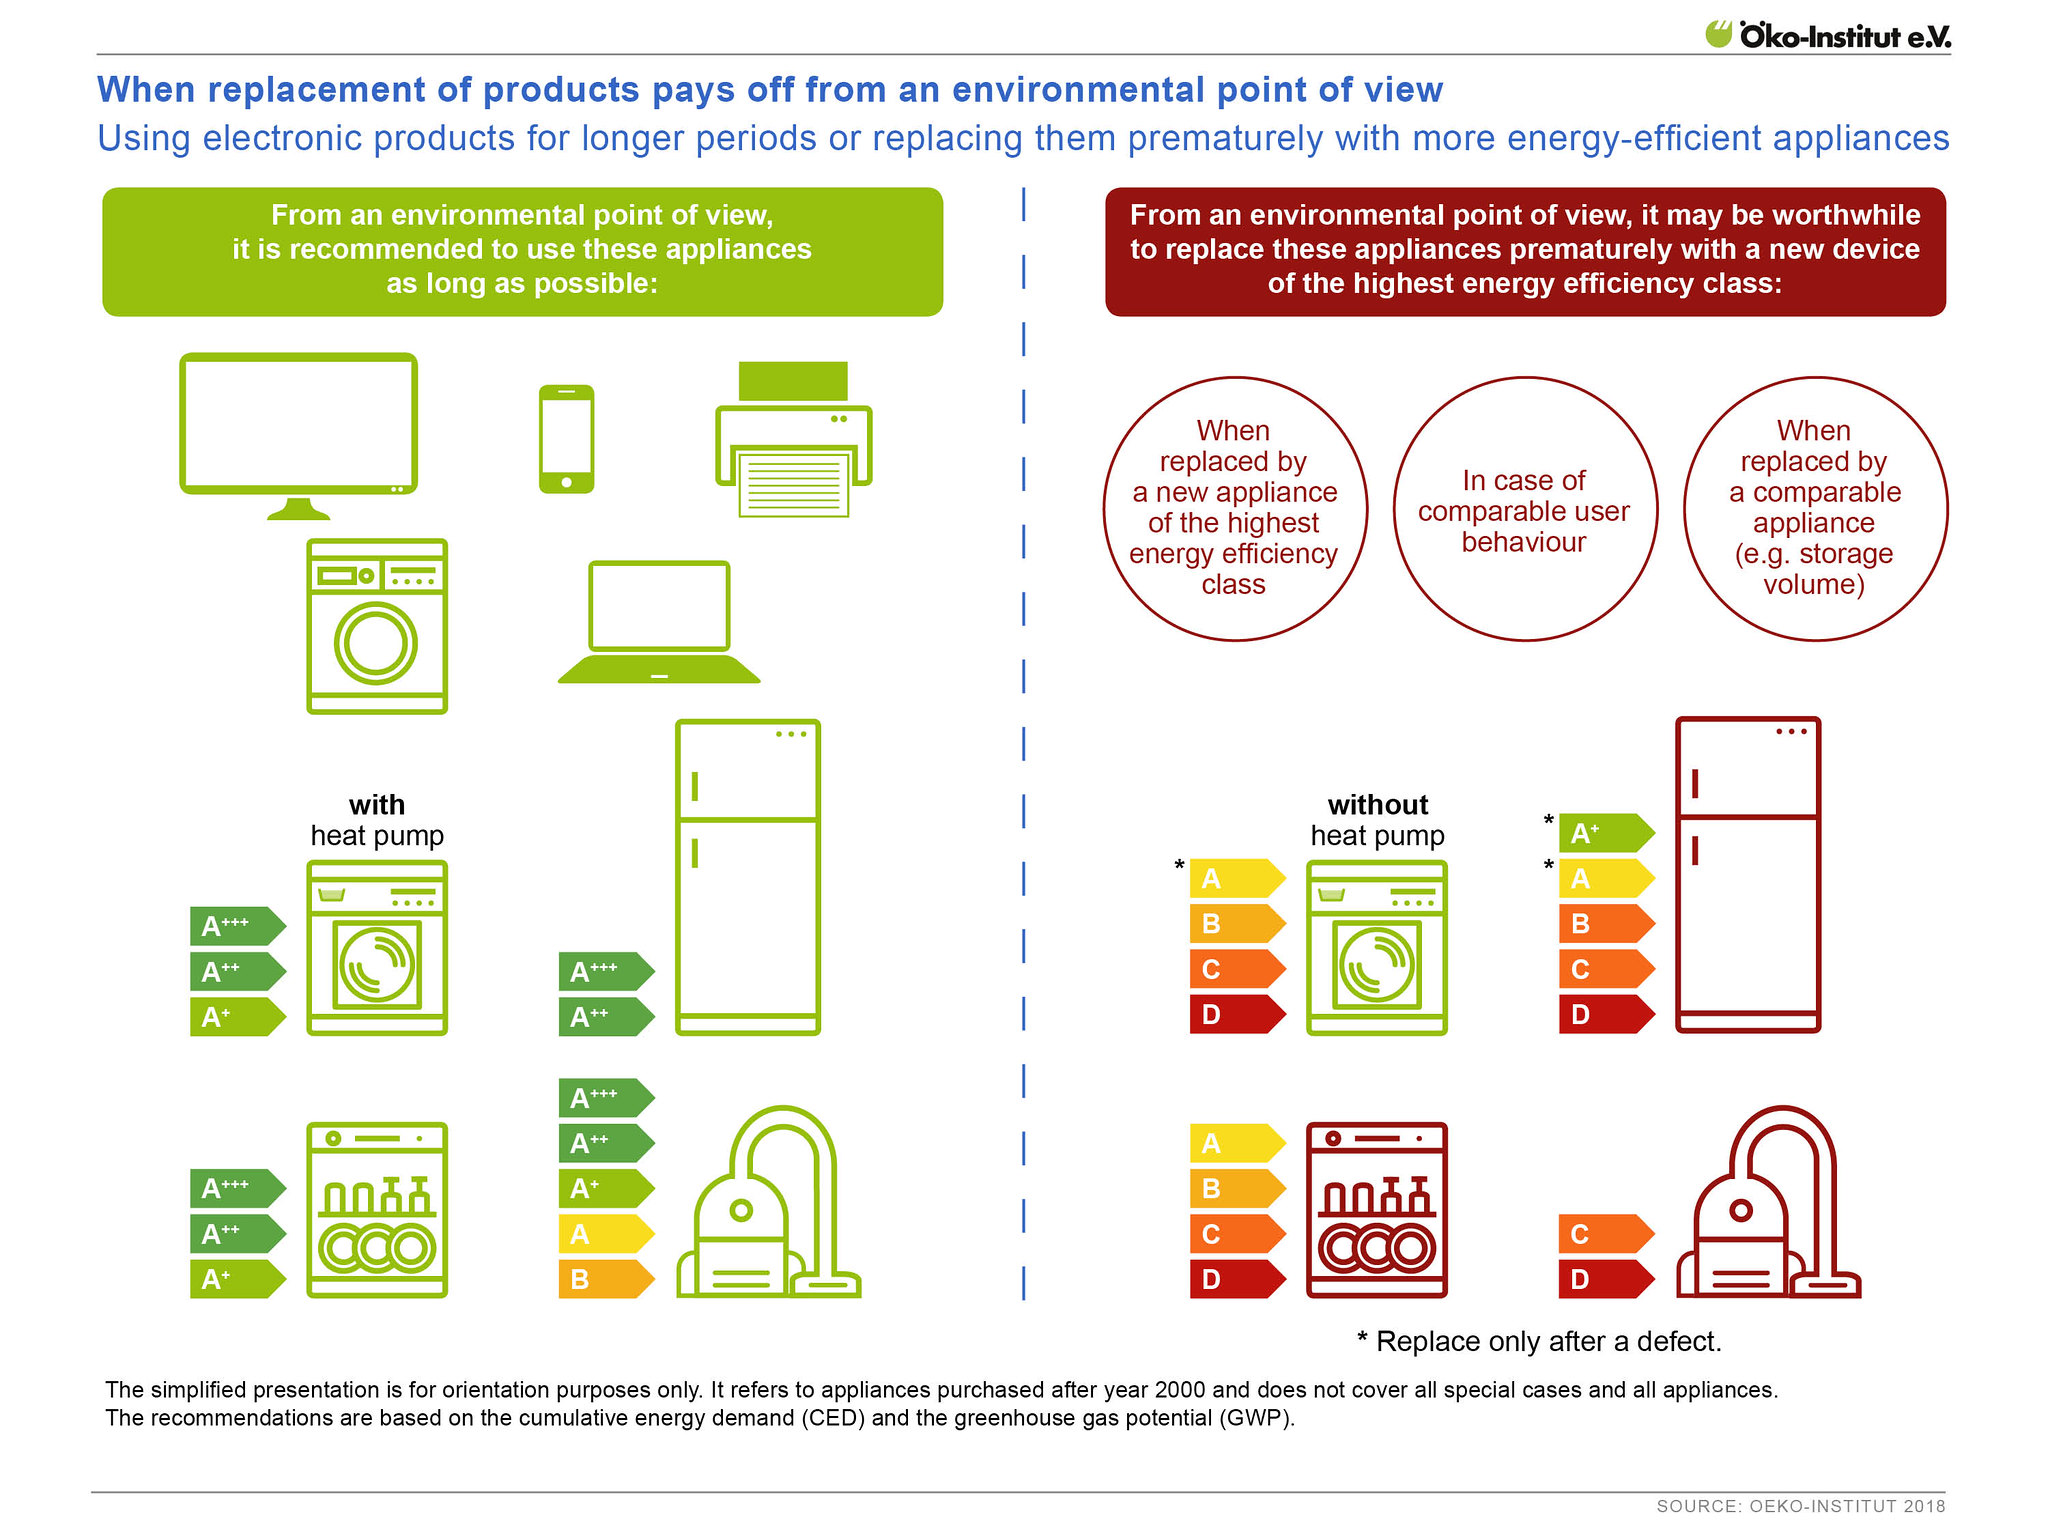 When replacement of products pays off from an environmental point of view – Using electronic products for longer periods or replacing them prematurely with more energy-efficient appliances